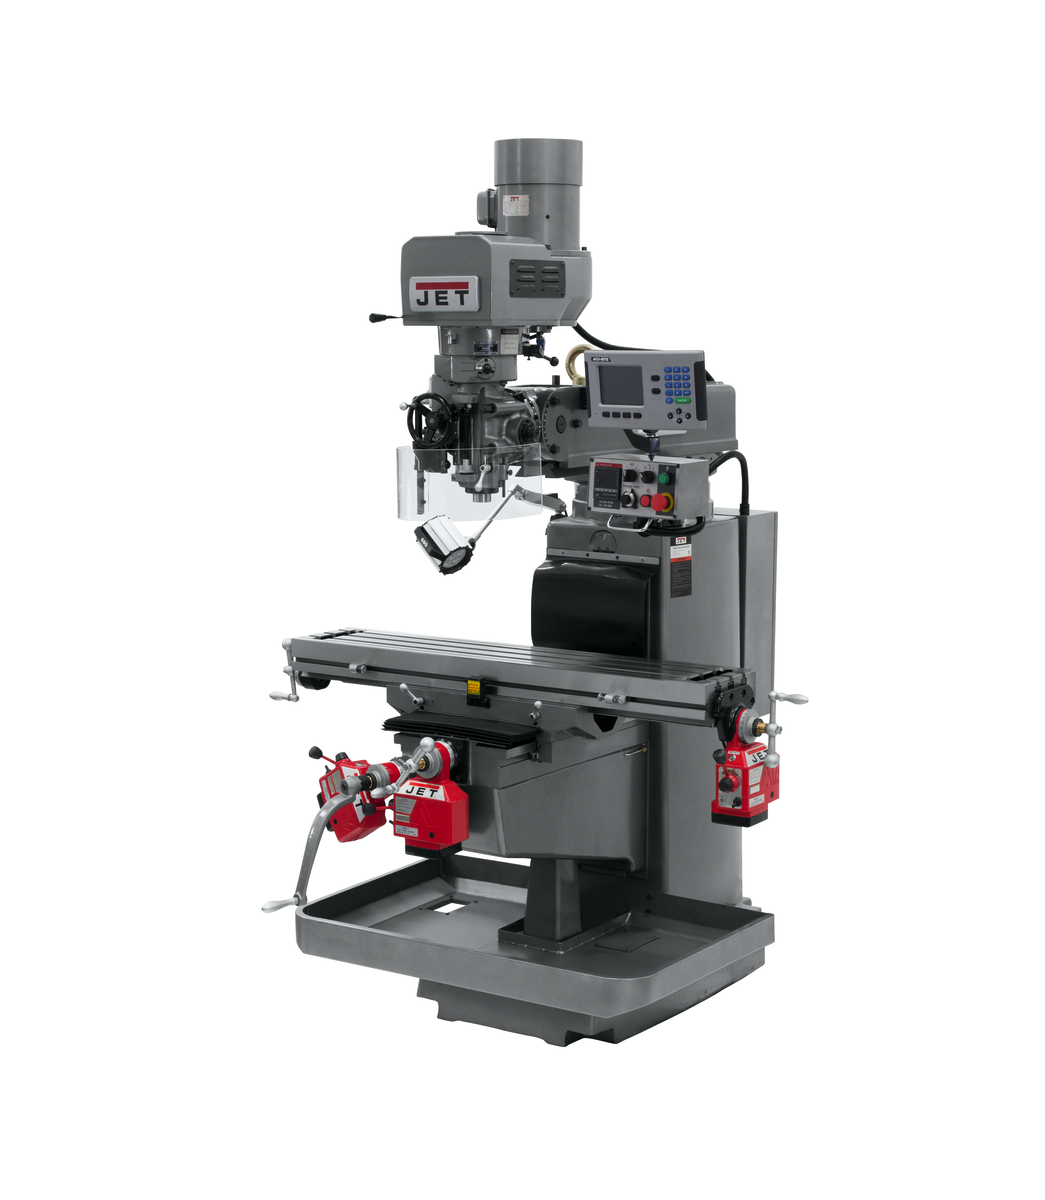 JTM-1050EVS2/230 Mill With 3-Axis Acu-Rite 203 DRO (Knee) With X, Y and Z-Axis Powerfeeds